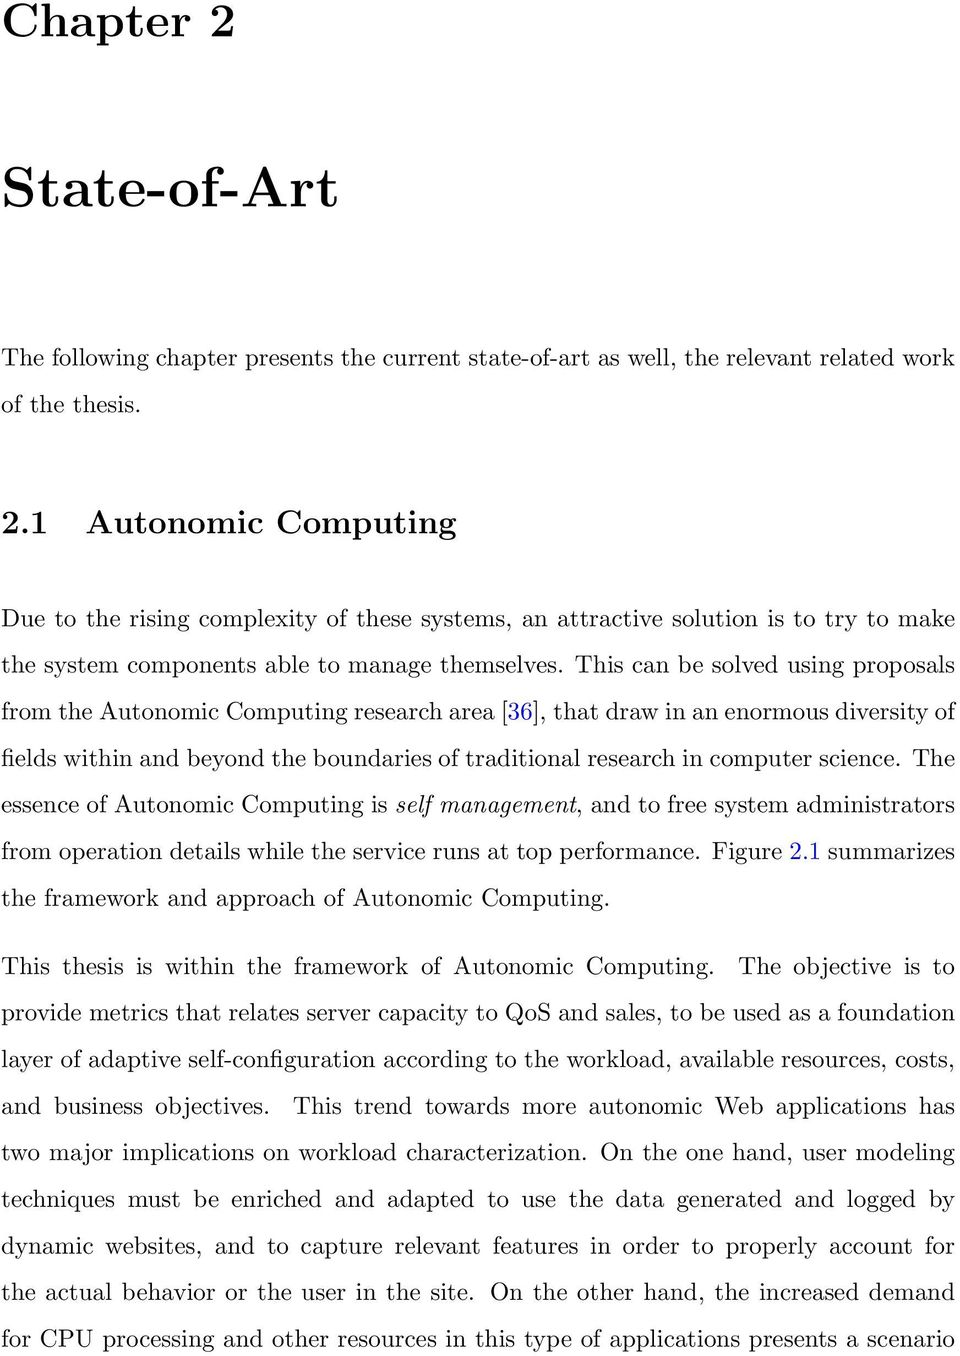 science. The essence of Autonomic Computing is self management, and to free system administrators from operation details while the service runs at top performance. Figure 2.